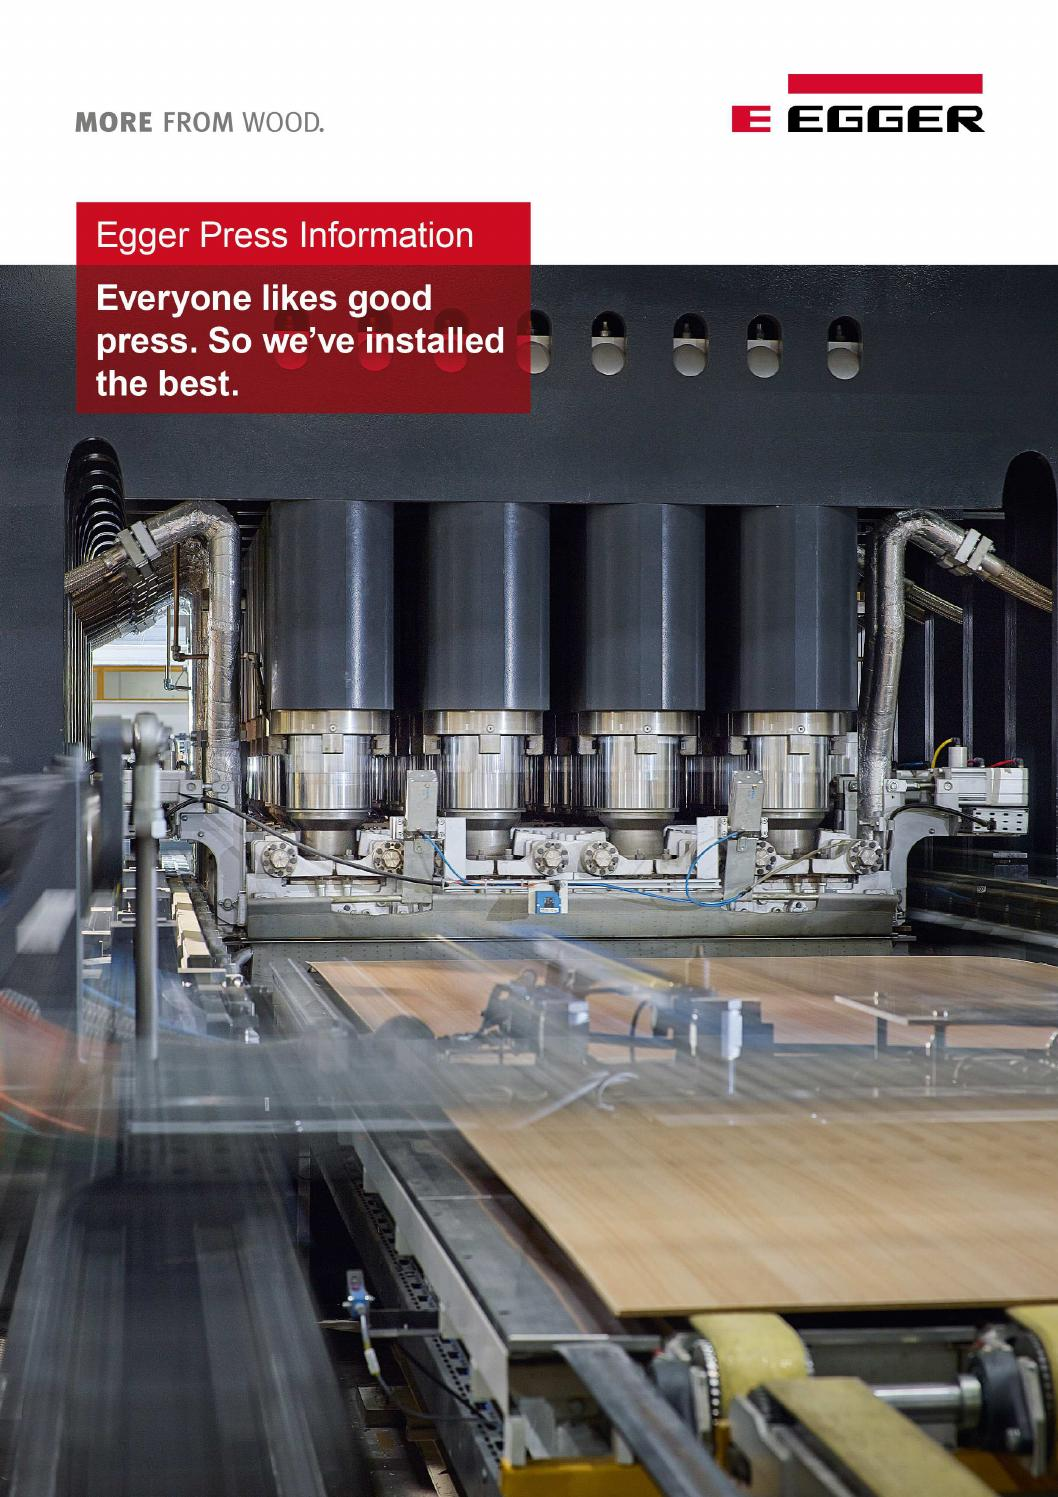 Bau Event Pressemappe Egger Bau 2015 Press Release By Xman Issuu - Leitner Gmbh Amp Co Bauunternehmung Kg